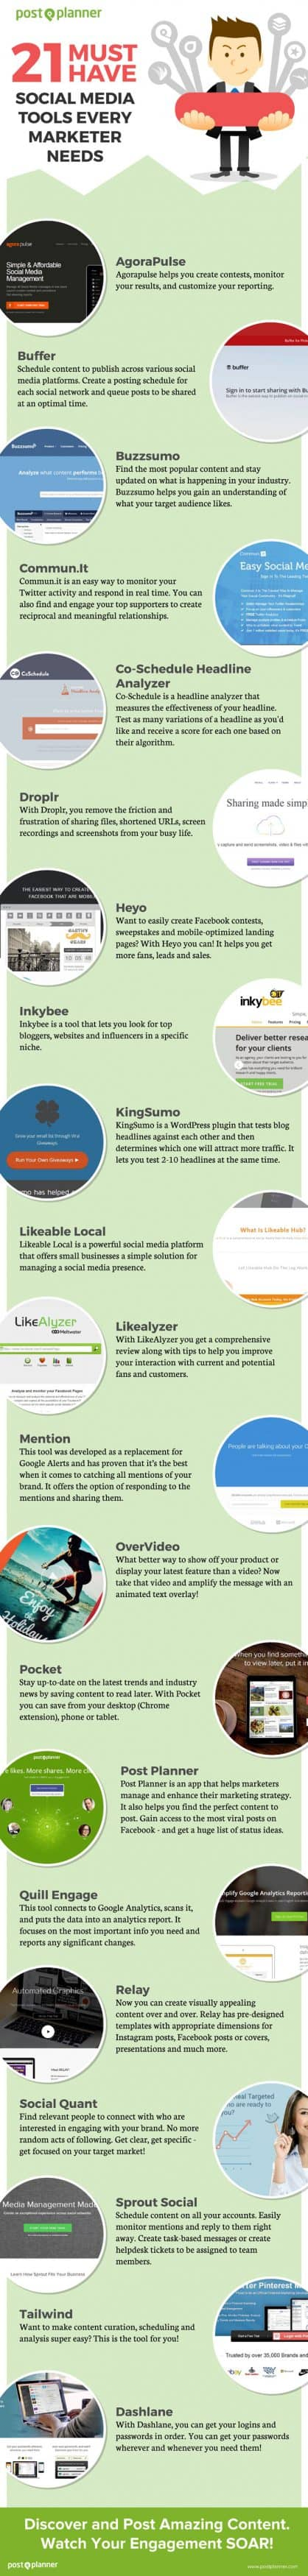 Social Media Tools by Brandon Gaille